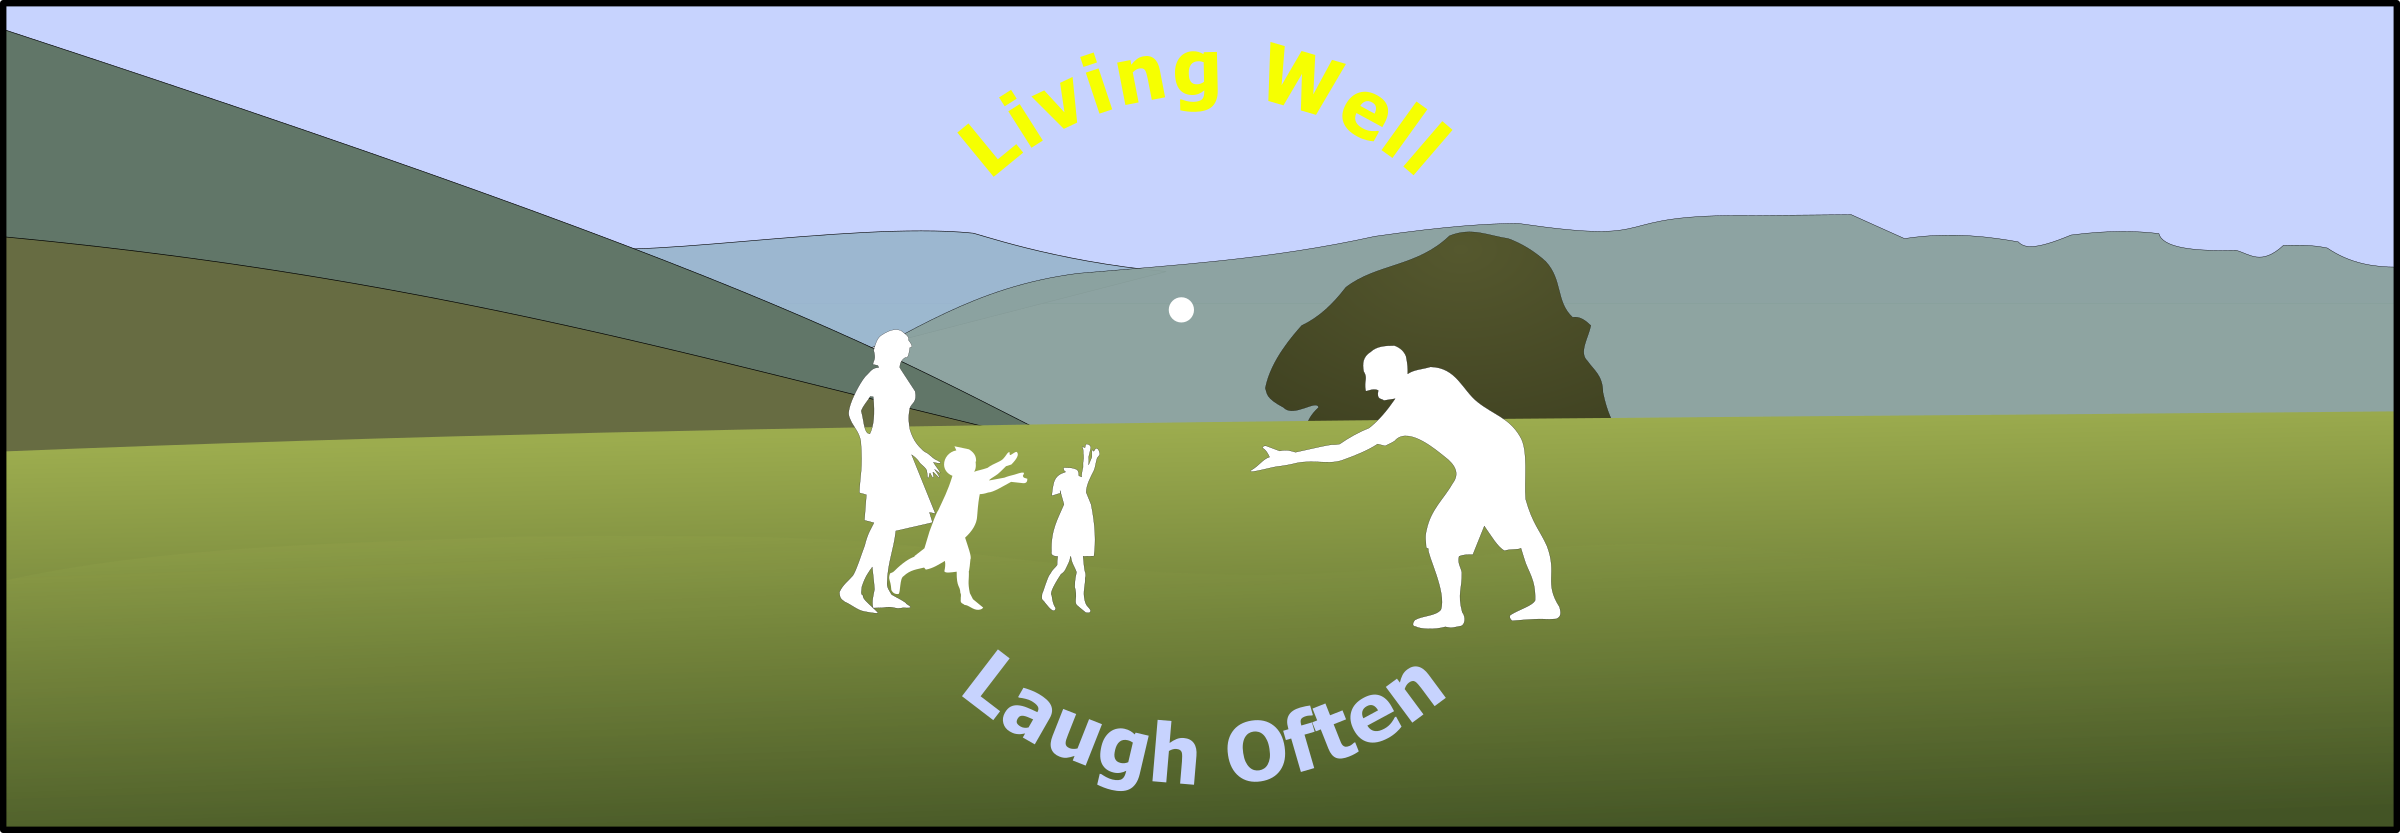 Living Well Laugh Often Header by pjsvbfcm